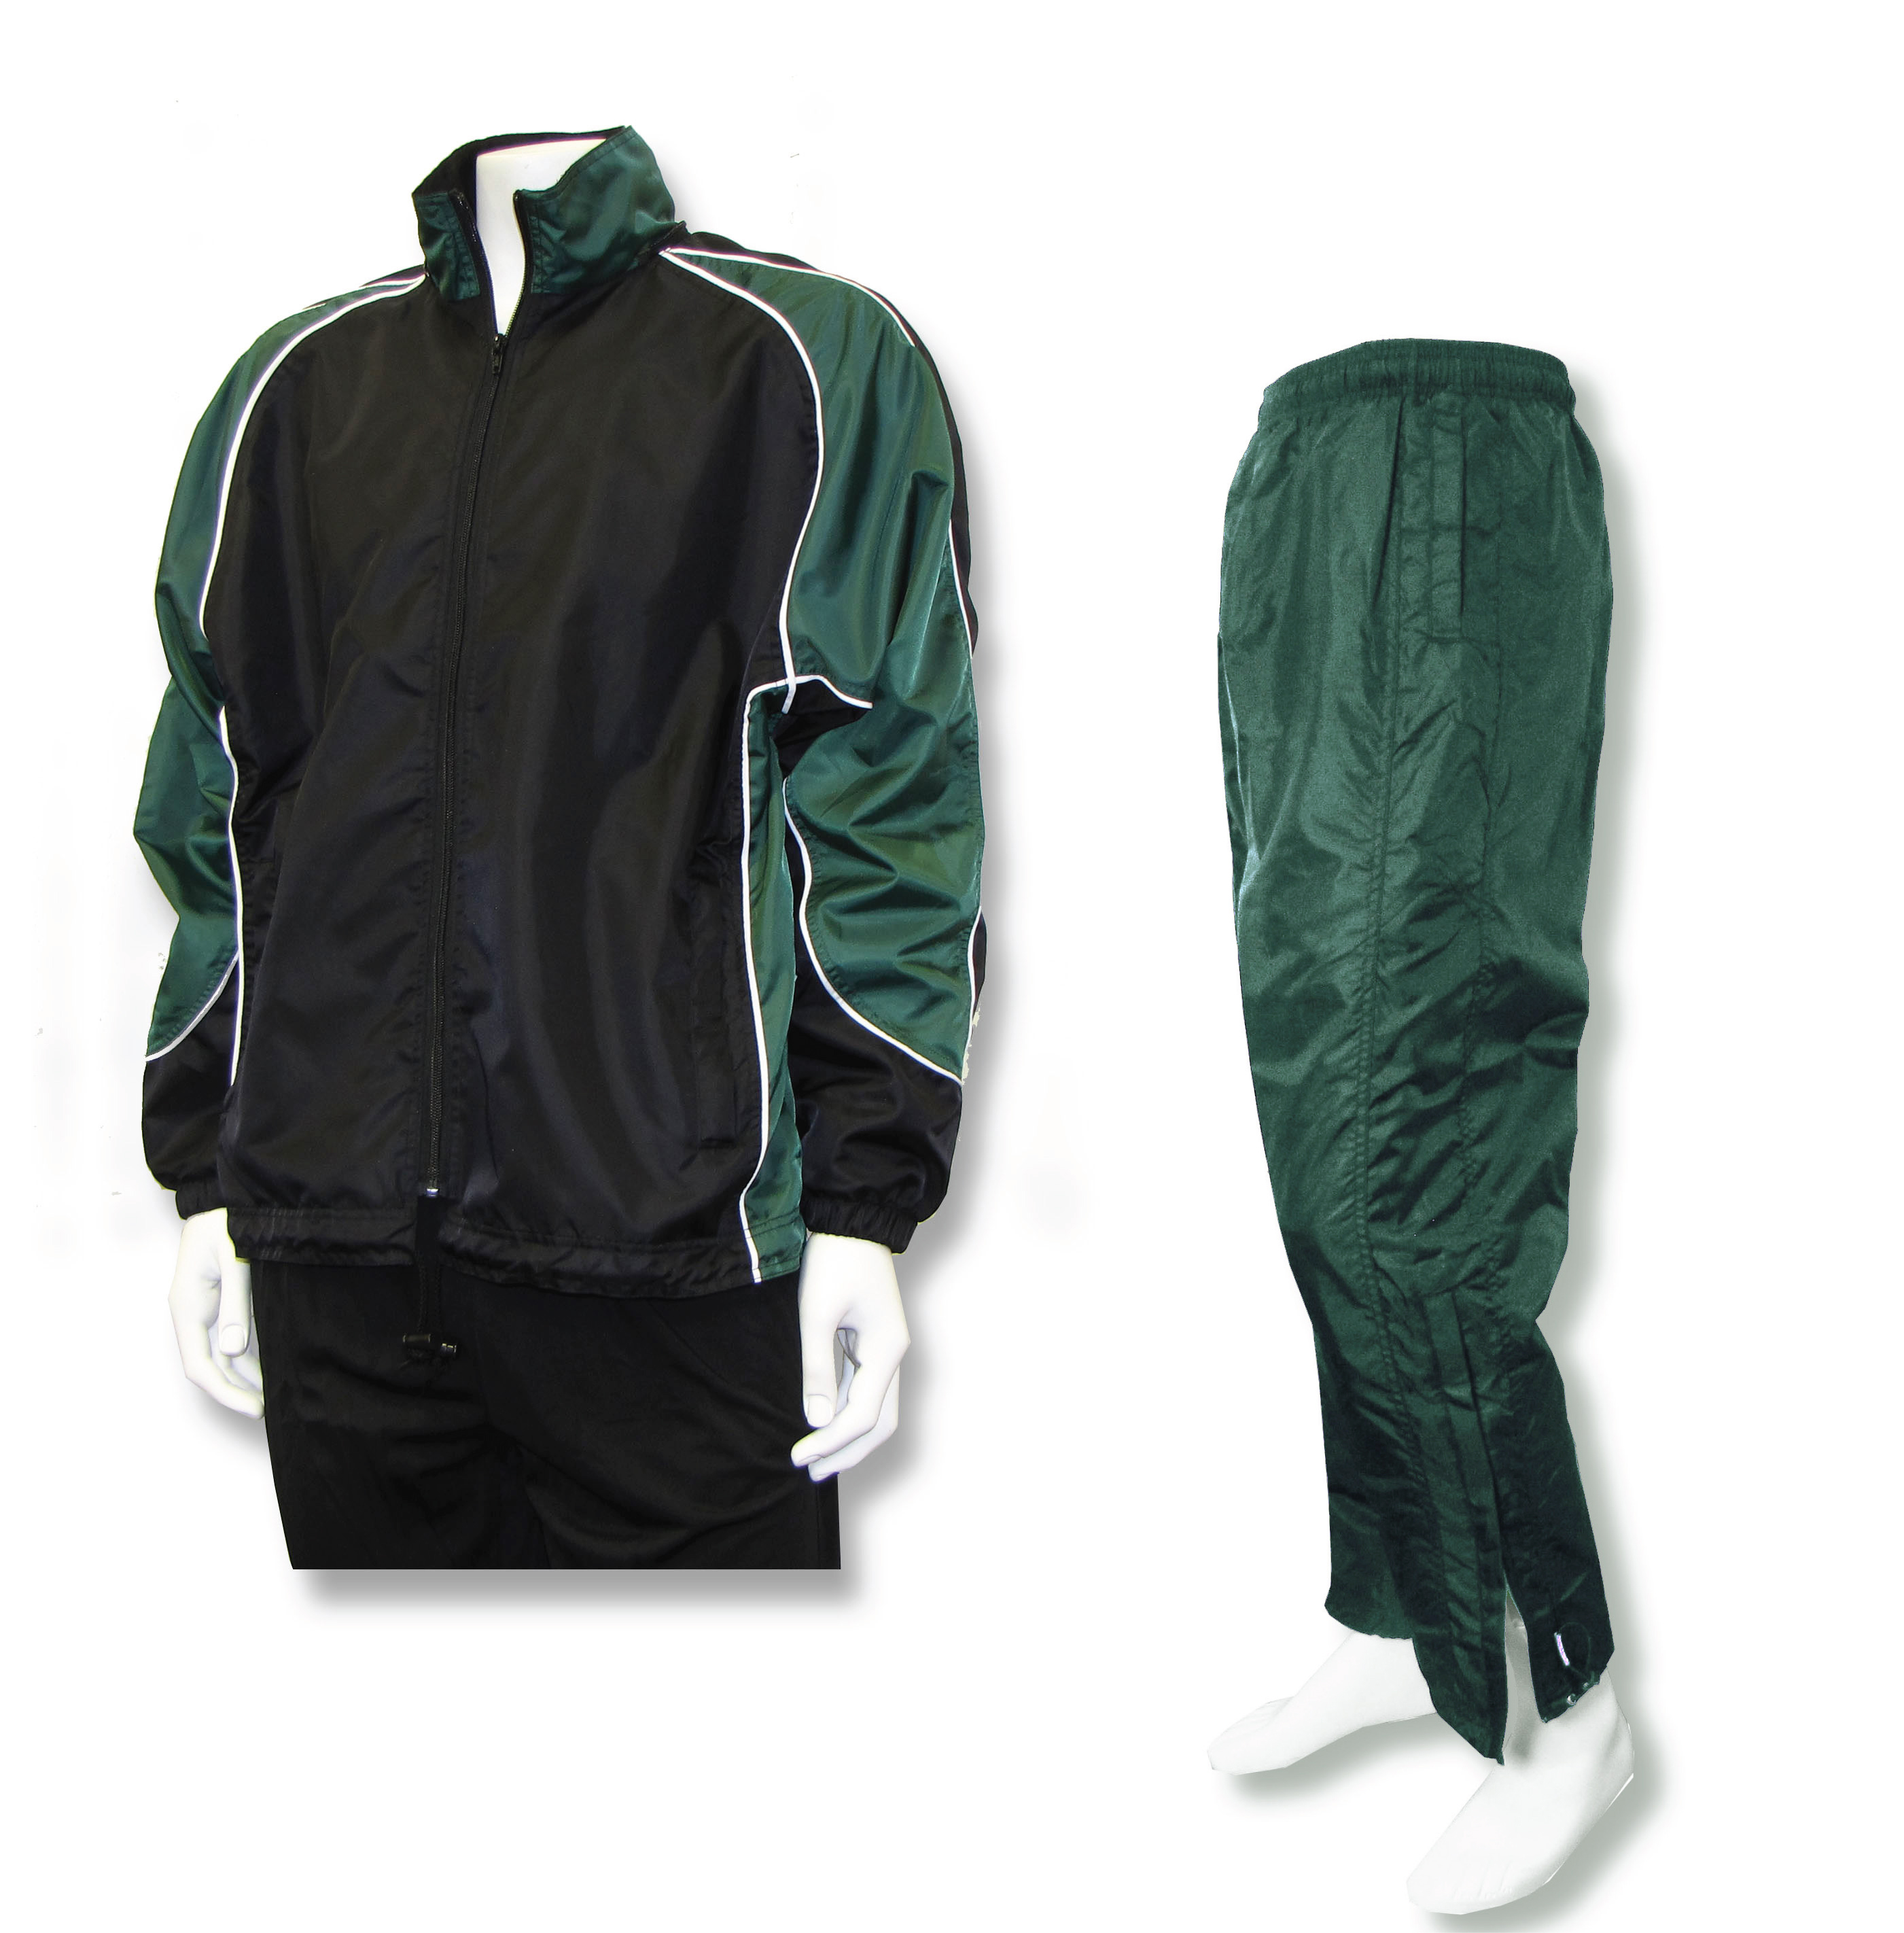 Viper warmup set with black/foreset jacket and forest pants by Code Four Athletics